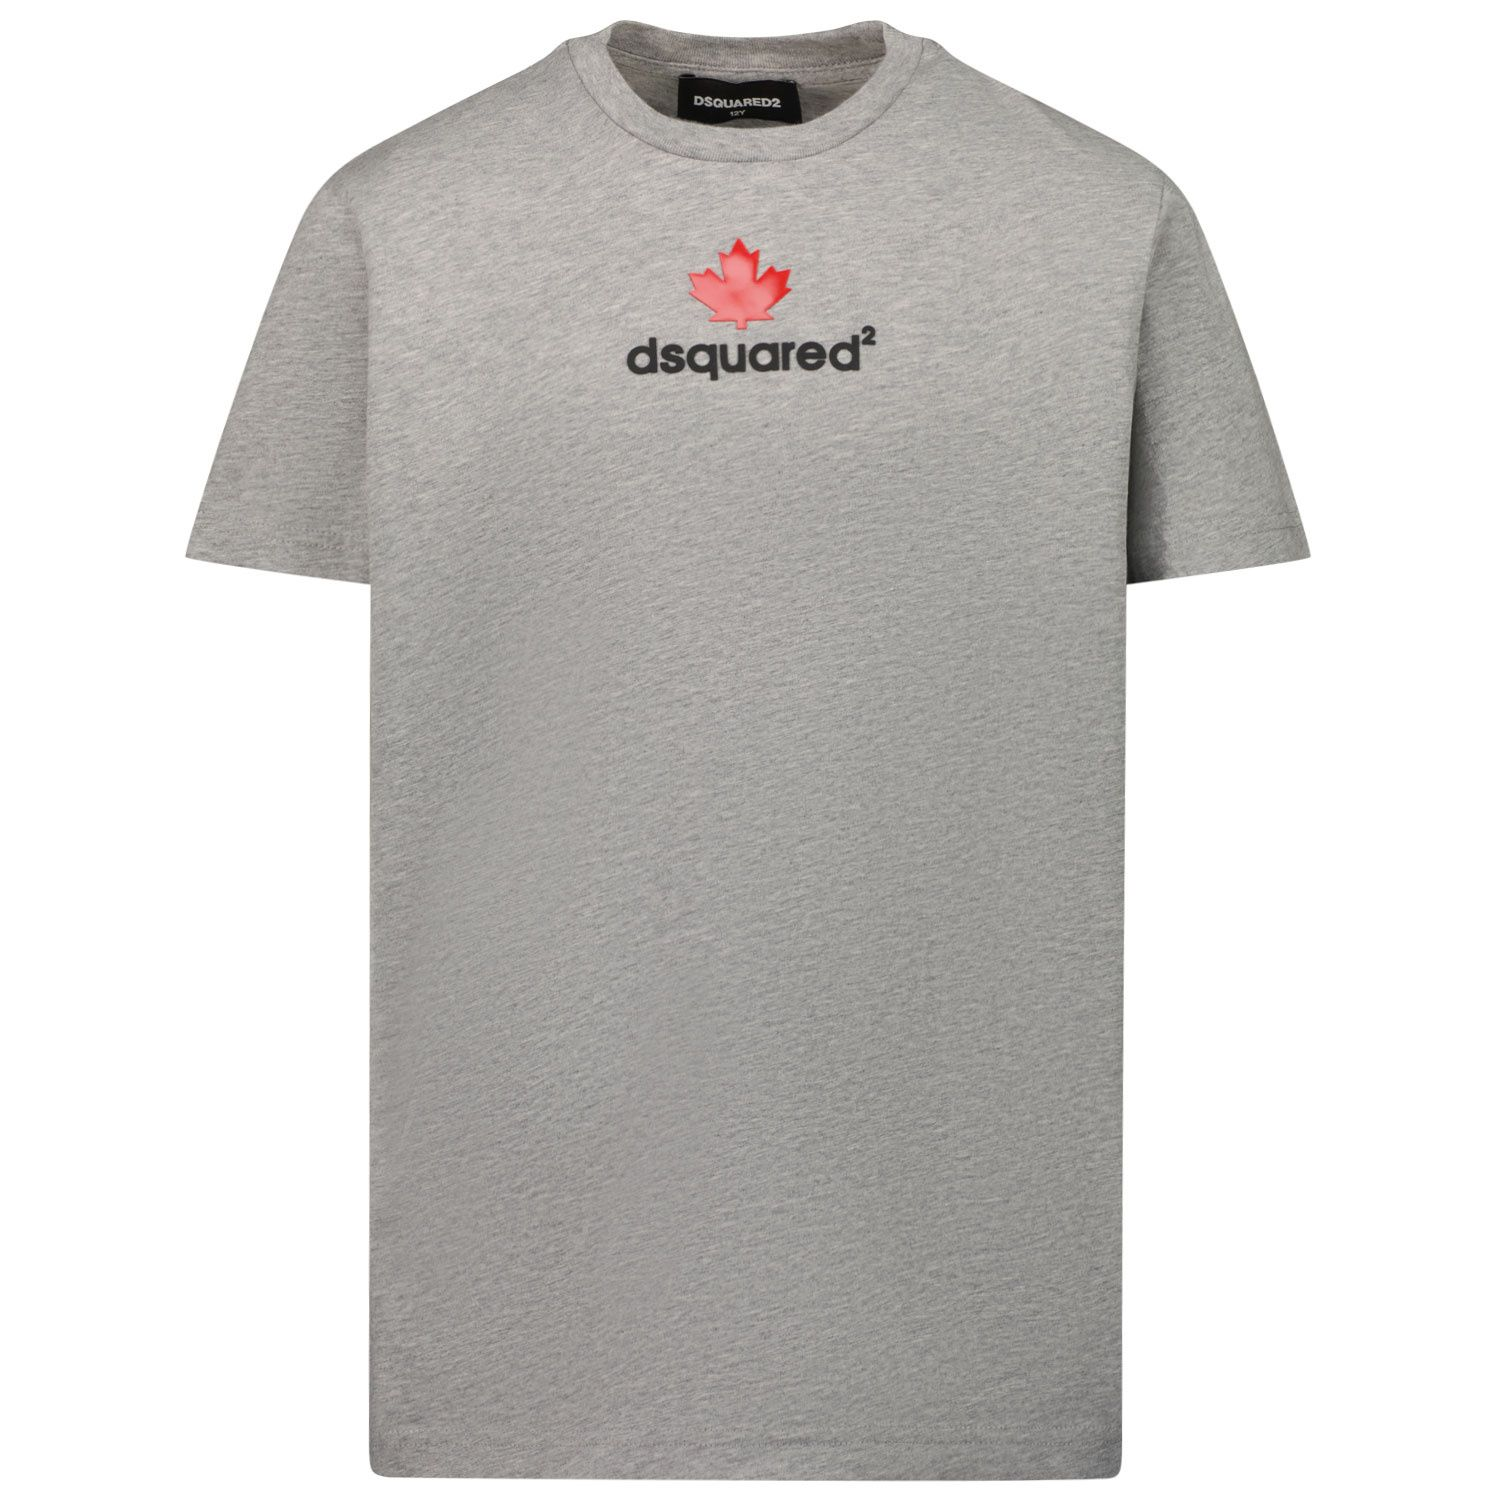 Picture of Dsquared2 DQ0515 kids t-shirt grey